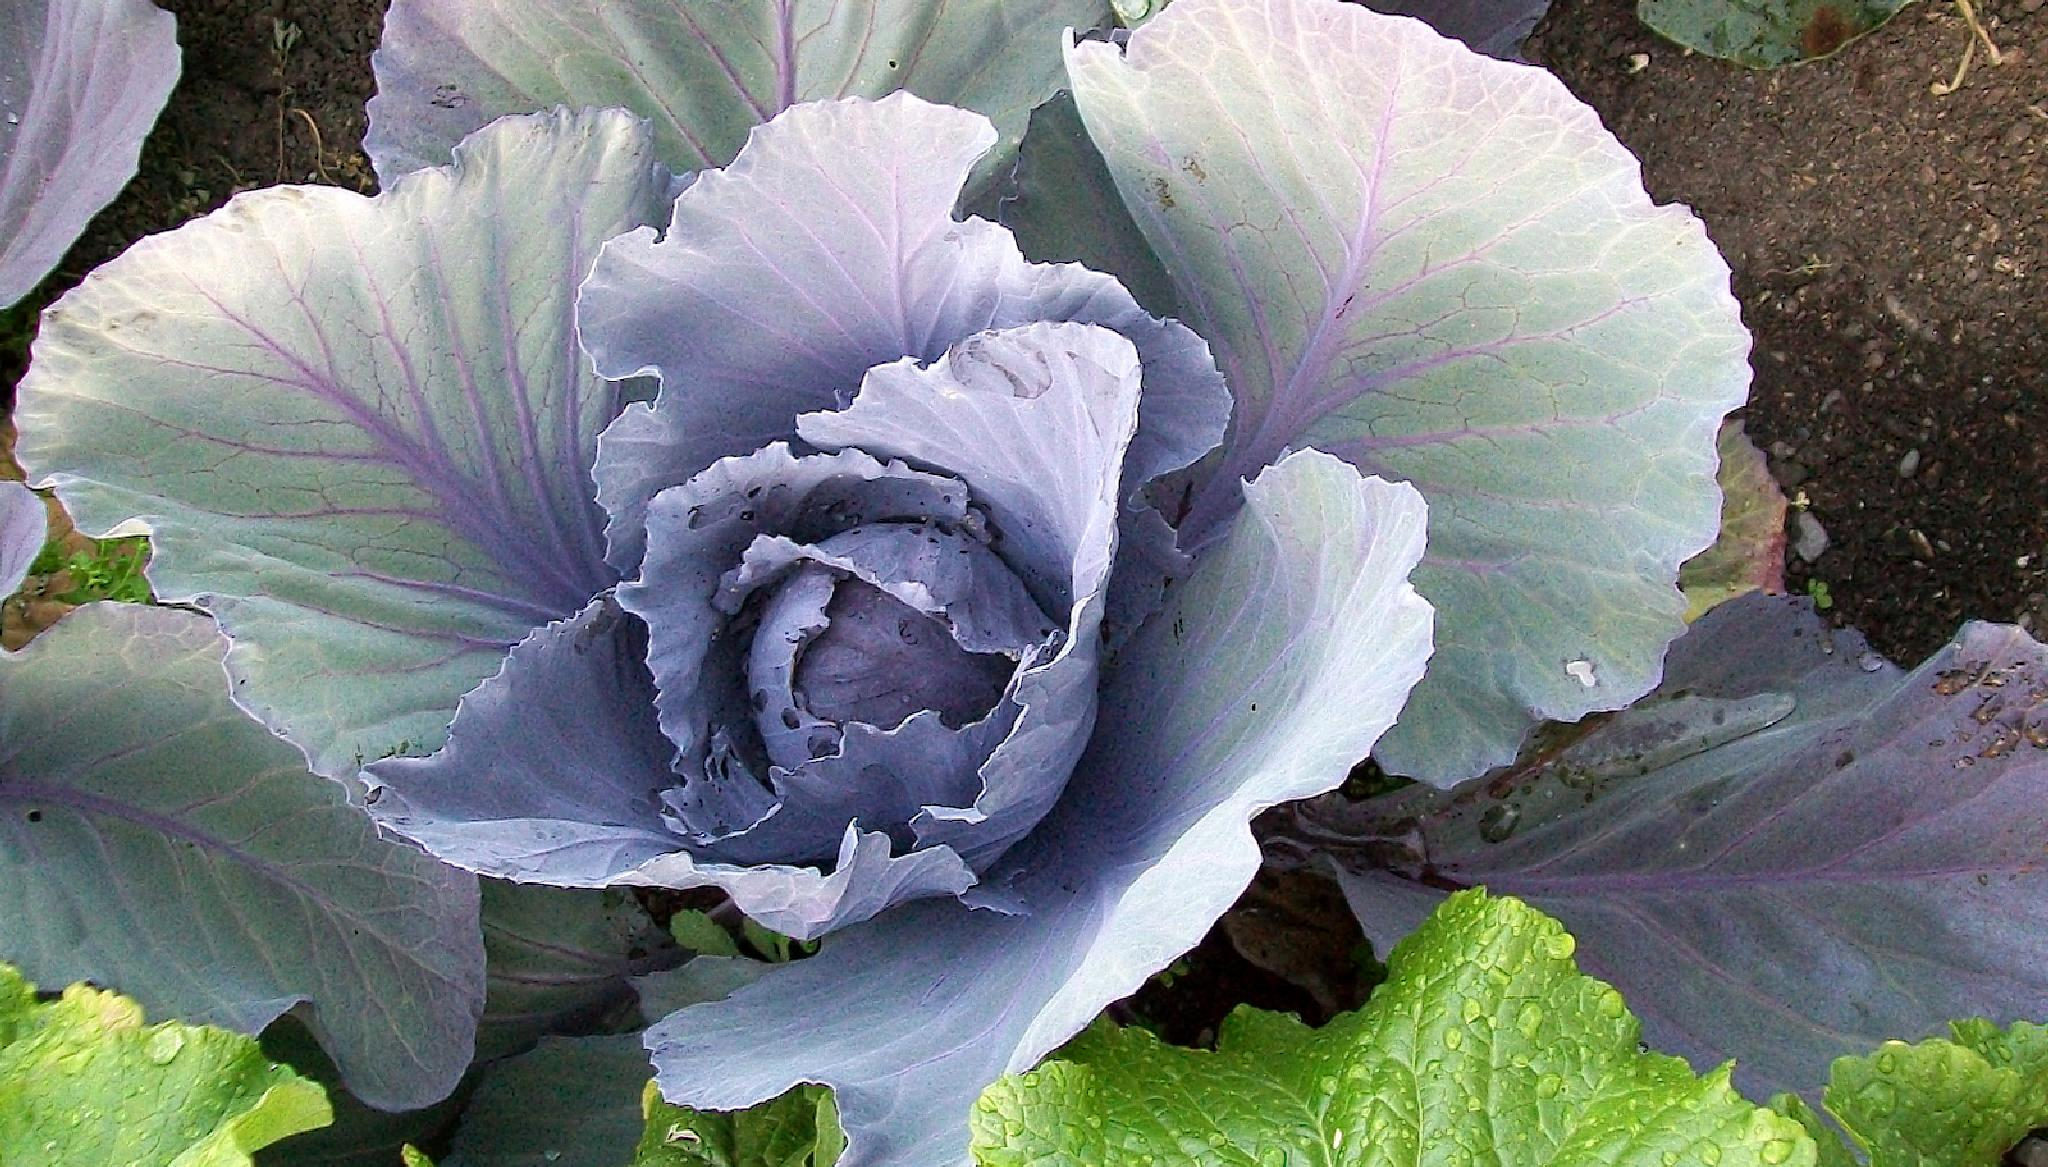 cabbage2 by ehayman27